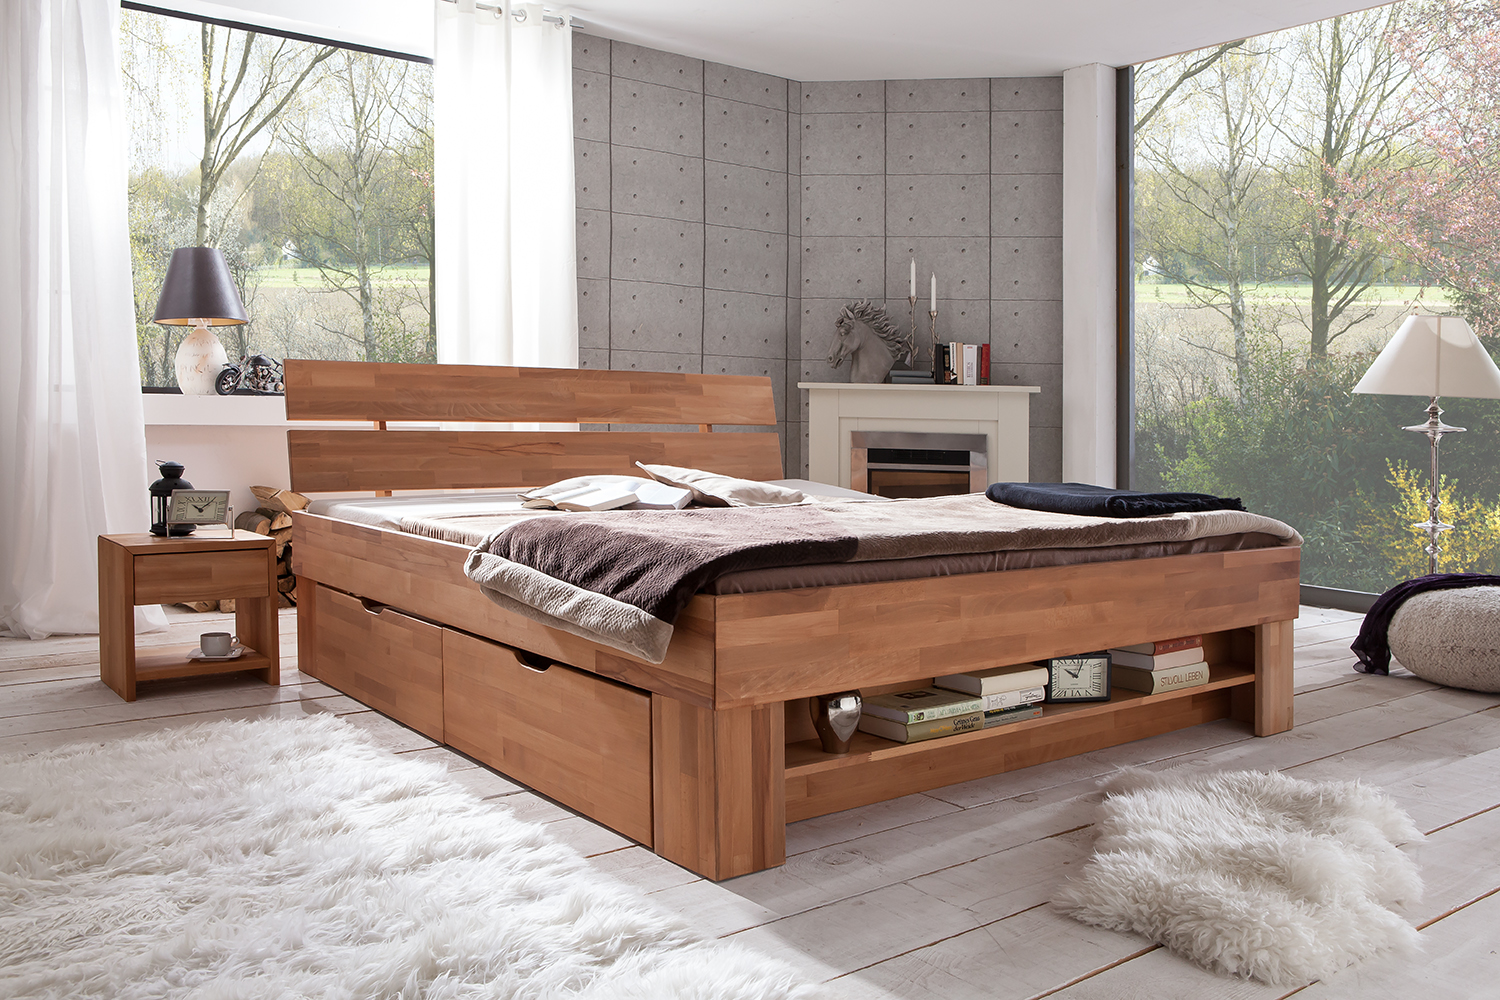 futonbett kernbuche massiv ge lt mit bettkasten 180x200. Black Bedroom Furniture Sets. Home Design Ideas